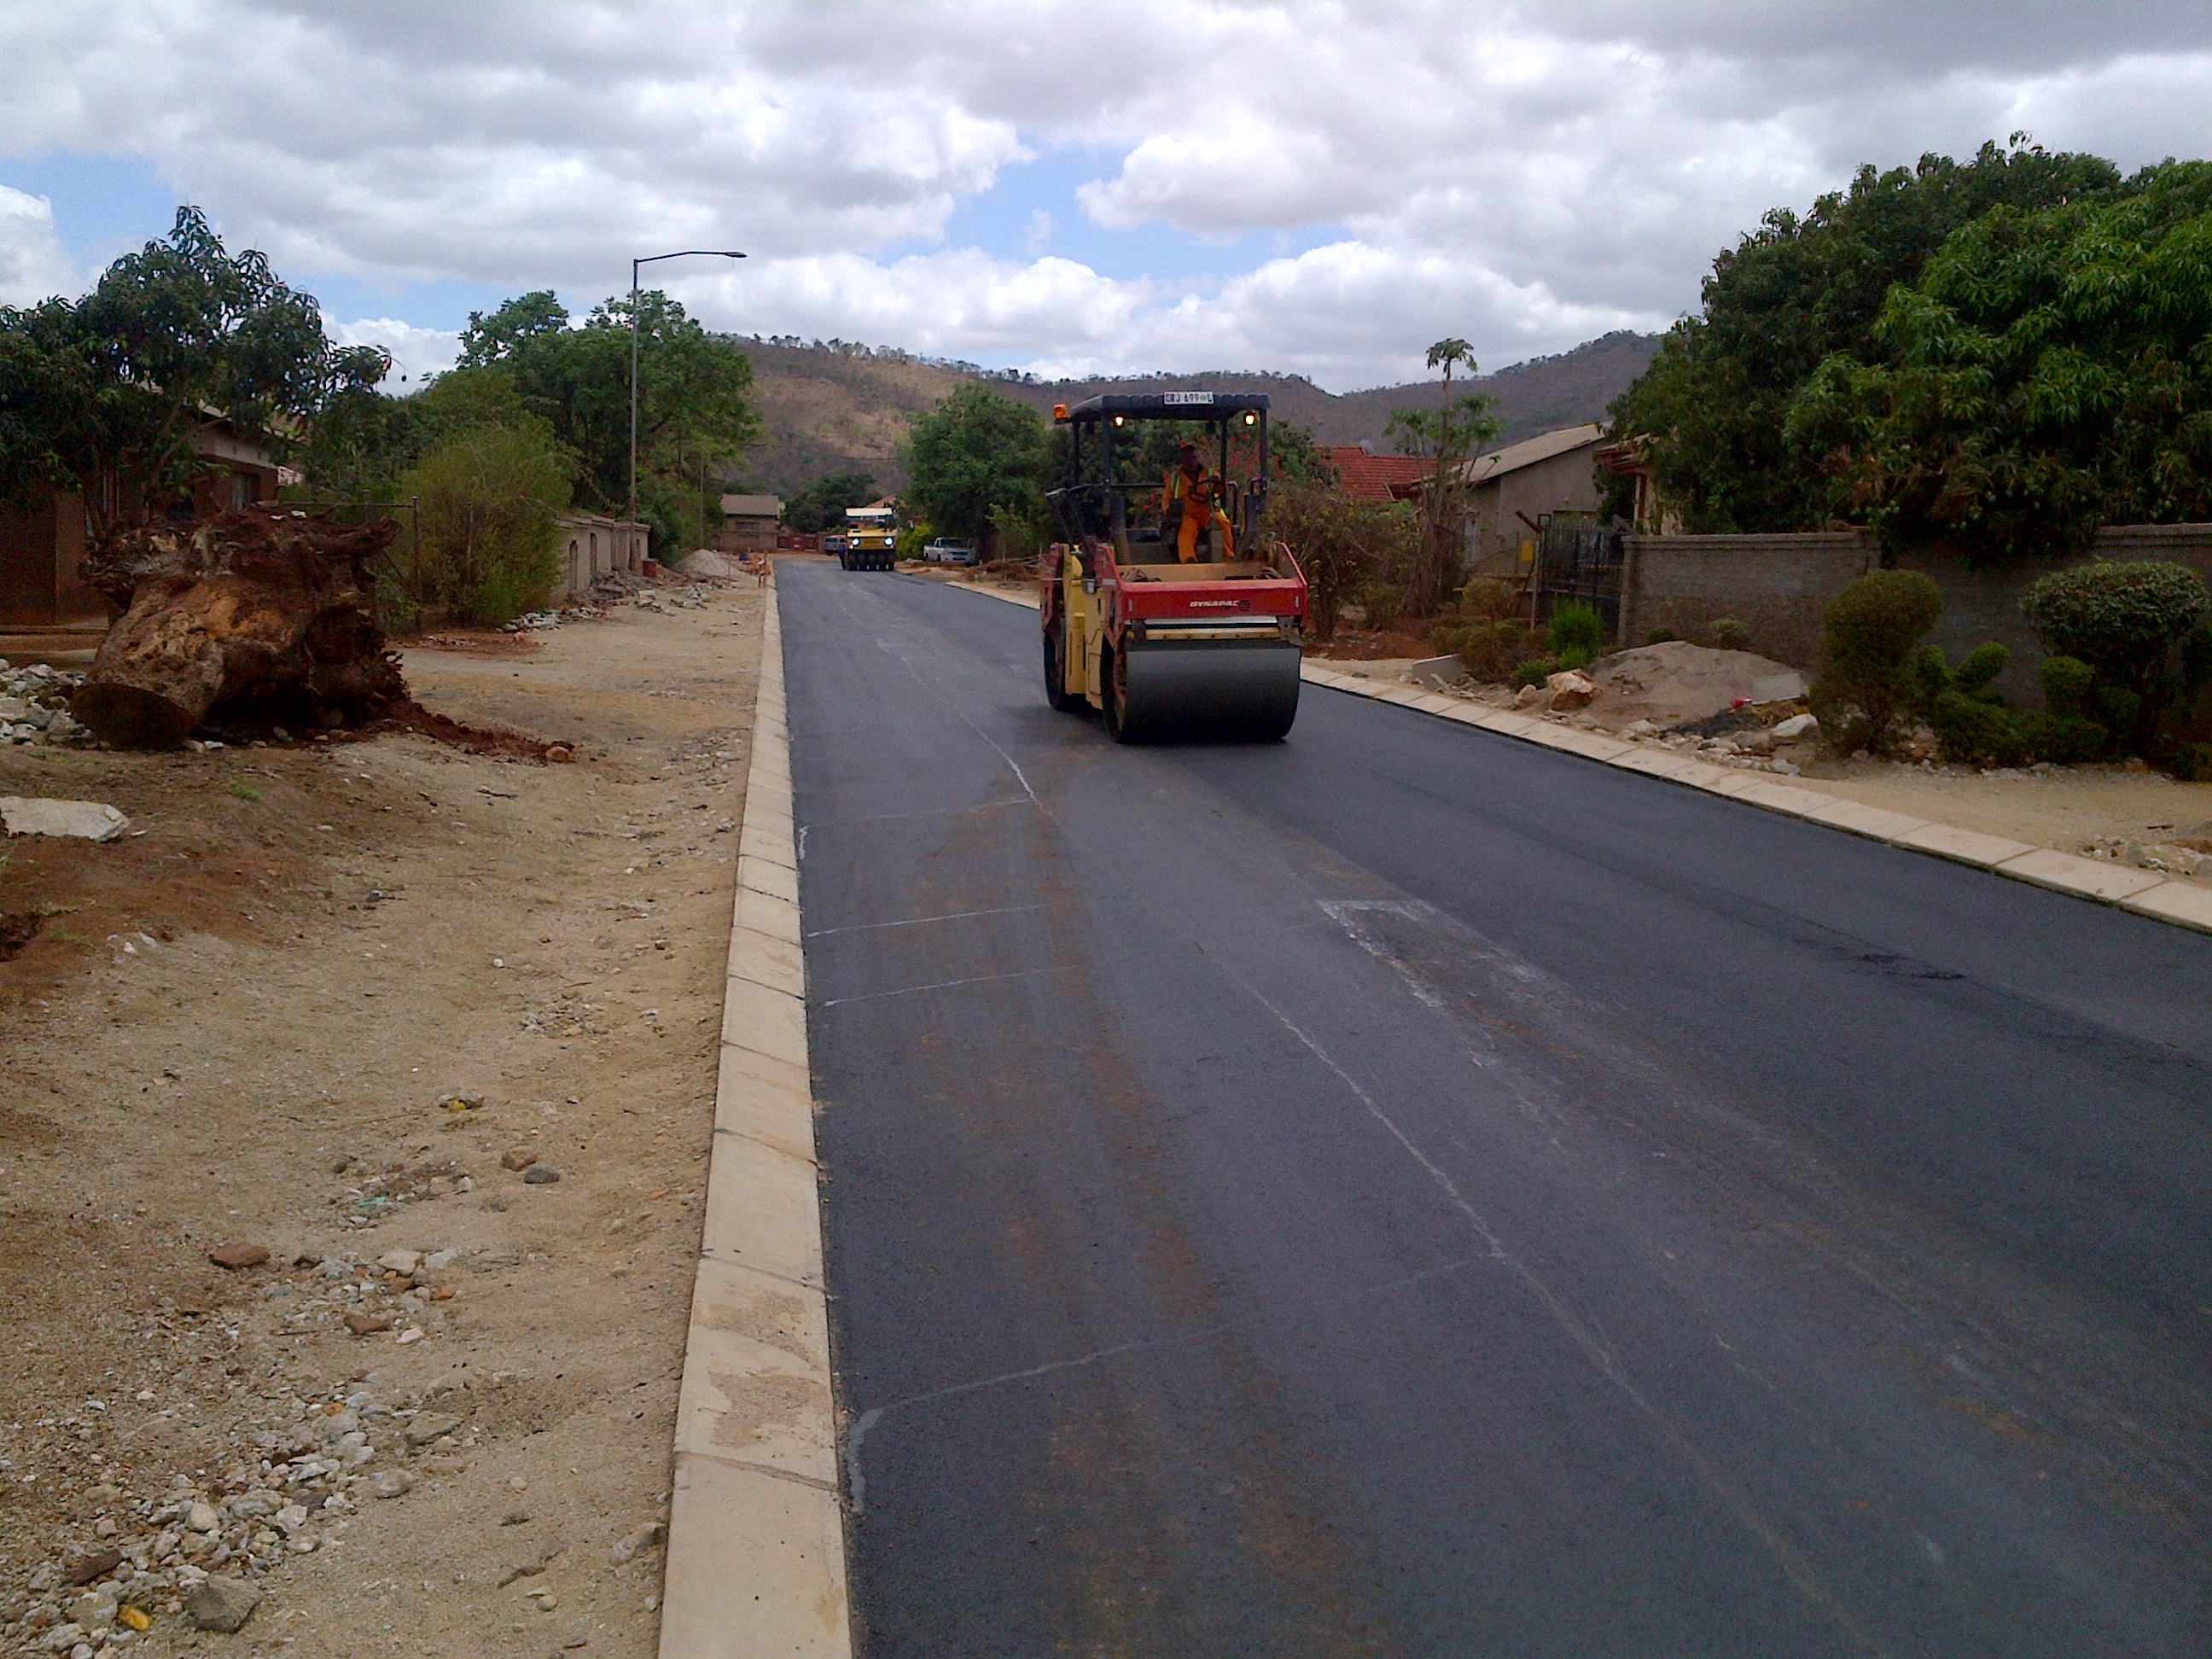 SES 010 P12 Compaction Of Surfacing In Progress